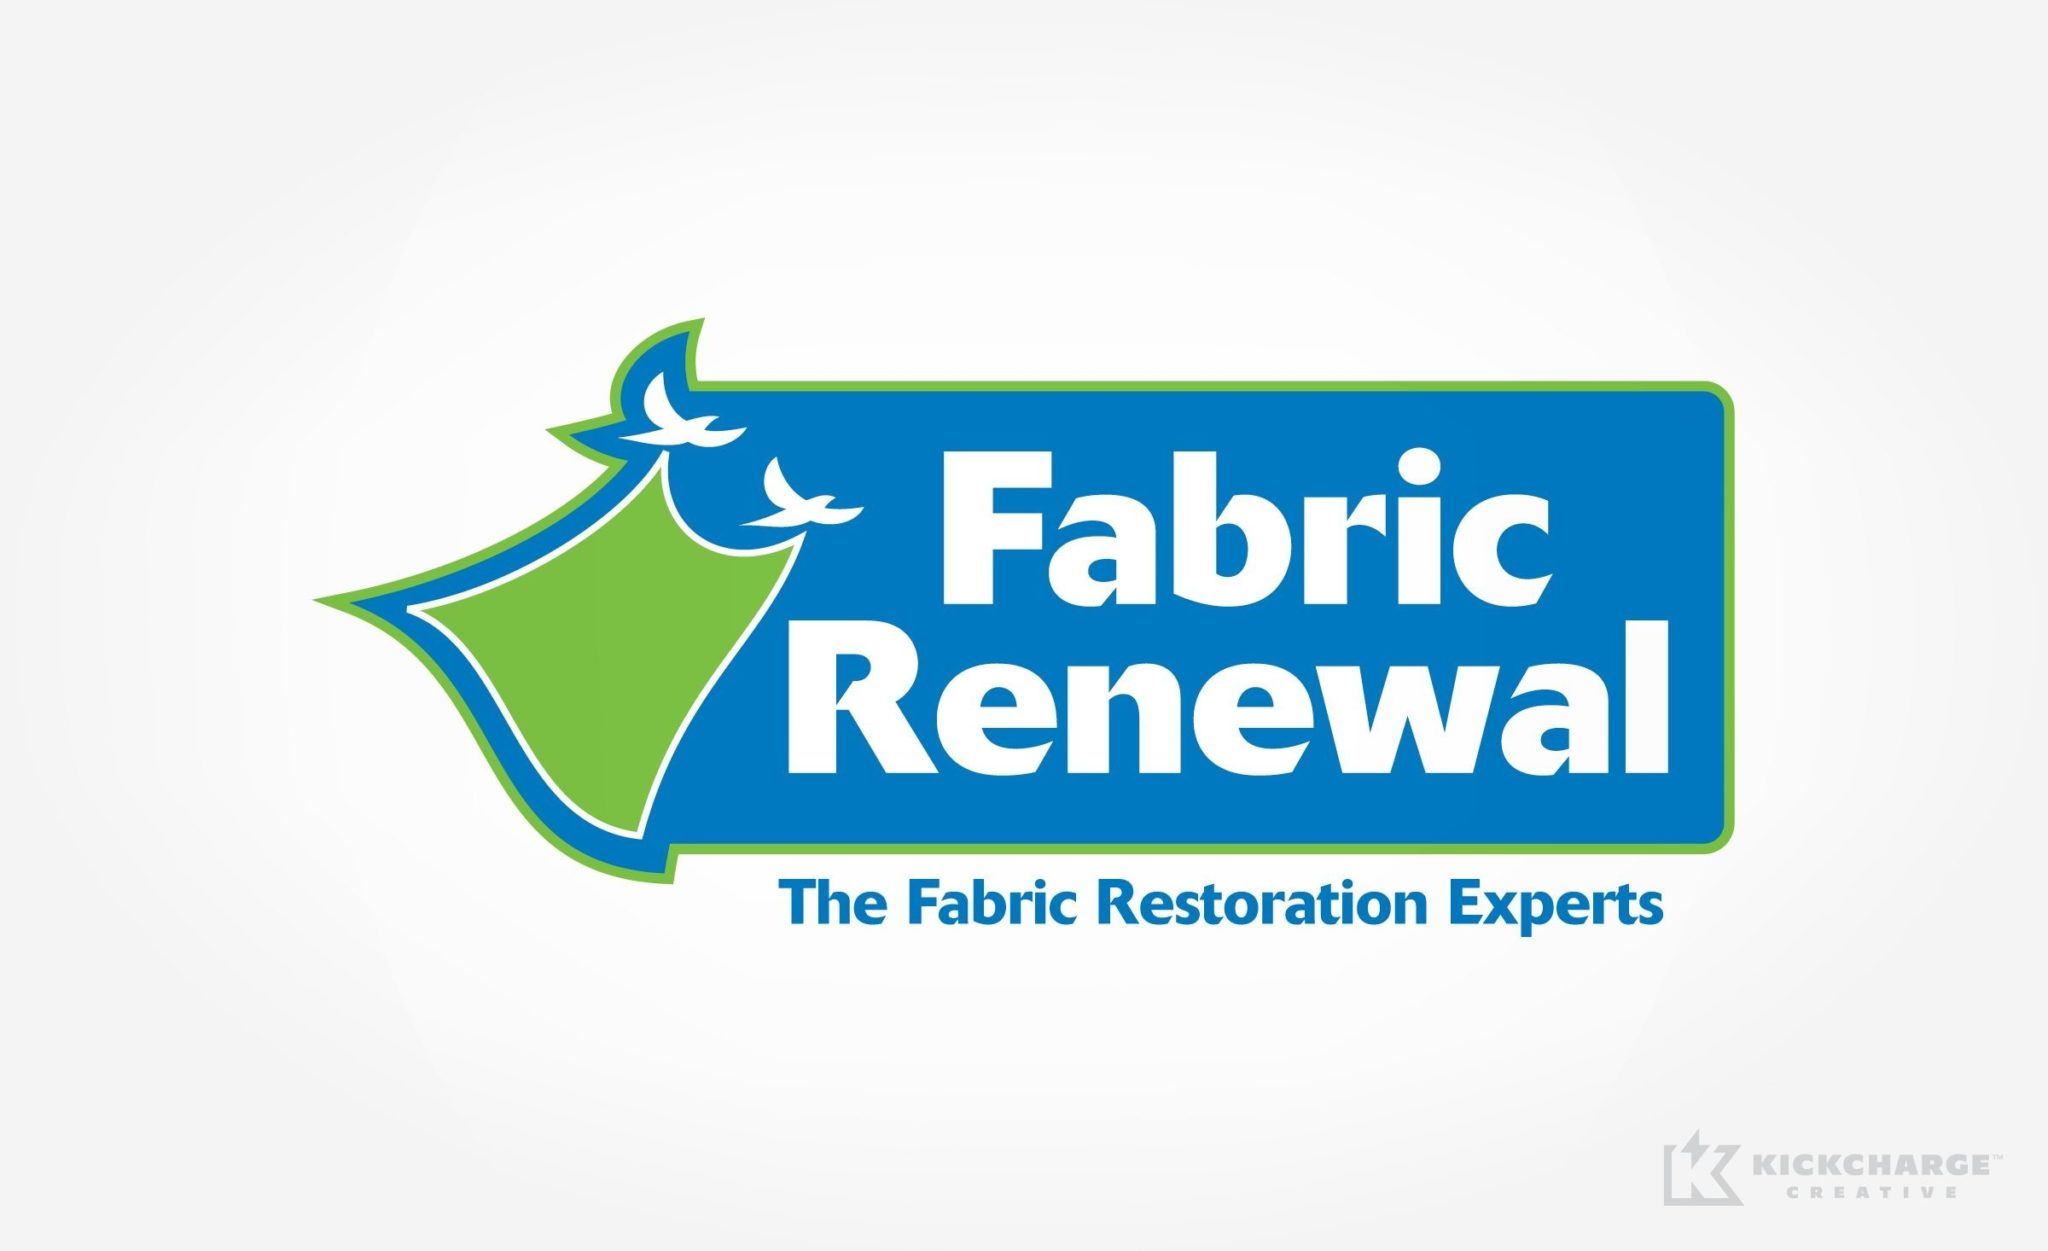 Fabric Renewal